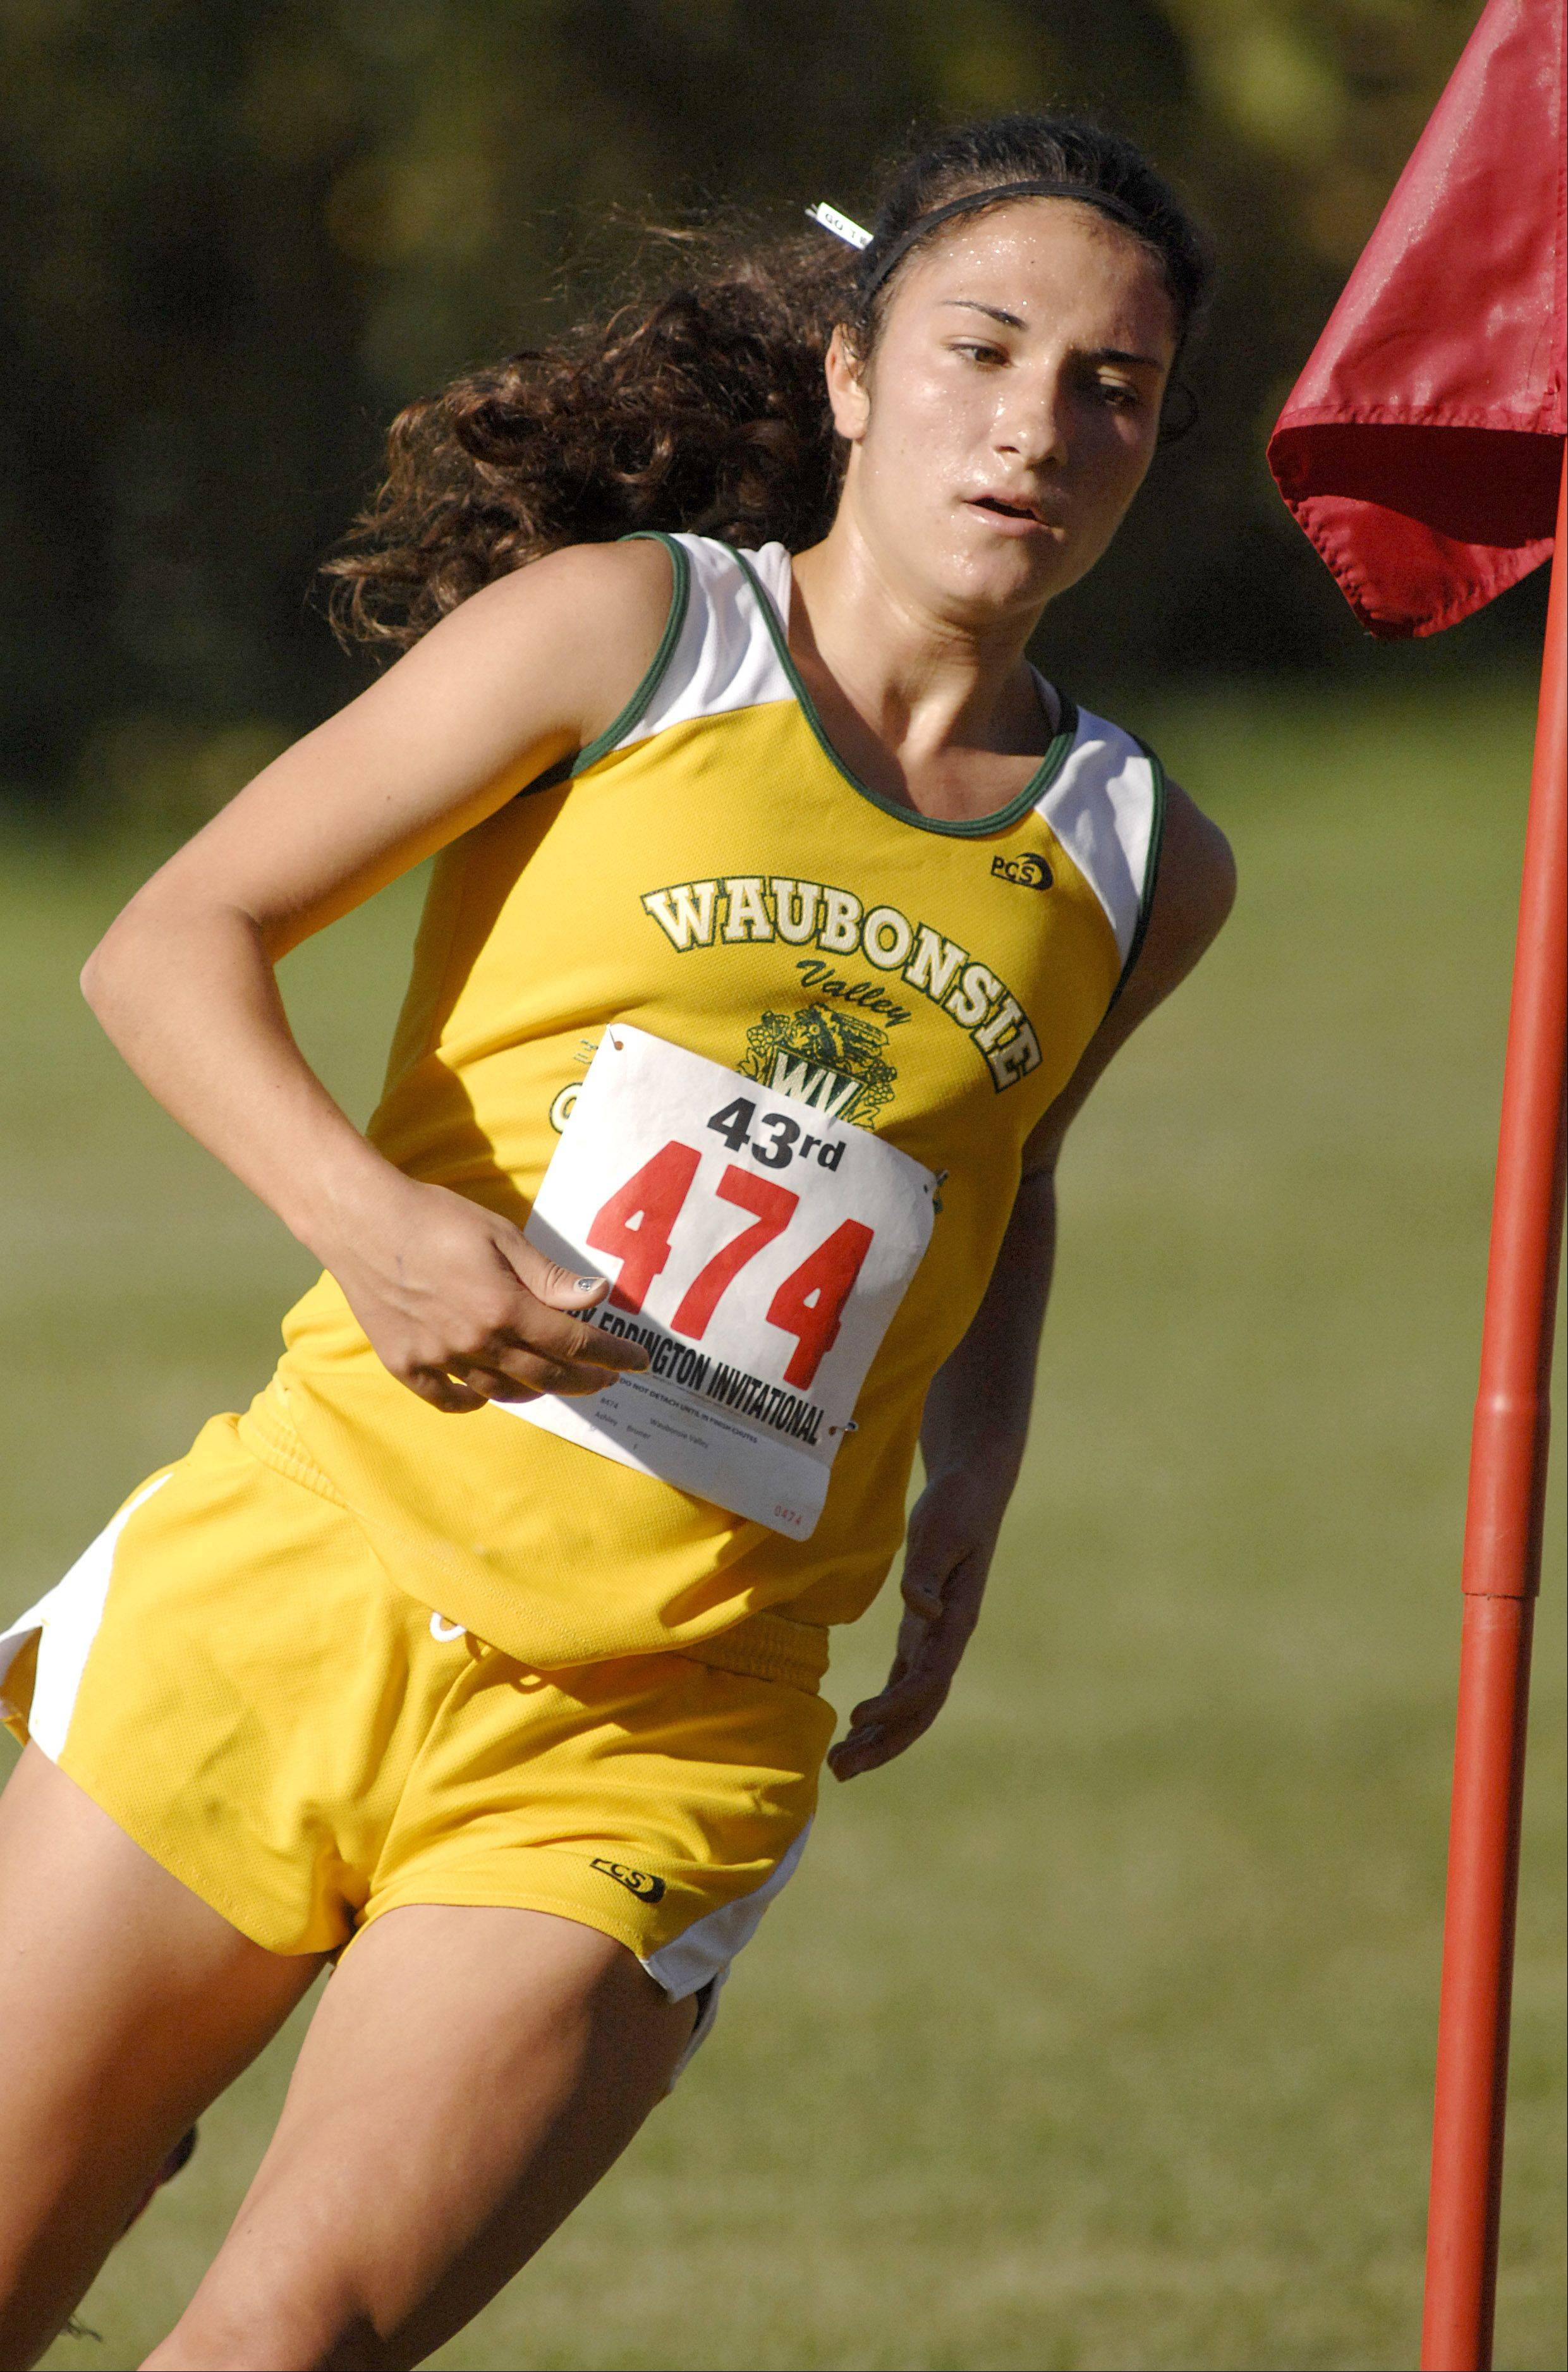 Waubonsie Valley's Ashley Brunner takes seventh place overall at the Kaneland Eddington Invitational in Elburn on Saturday, September 15.